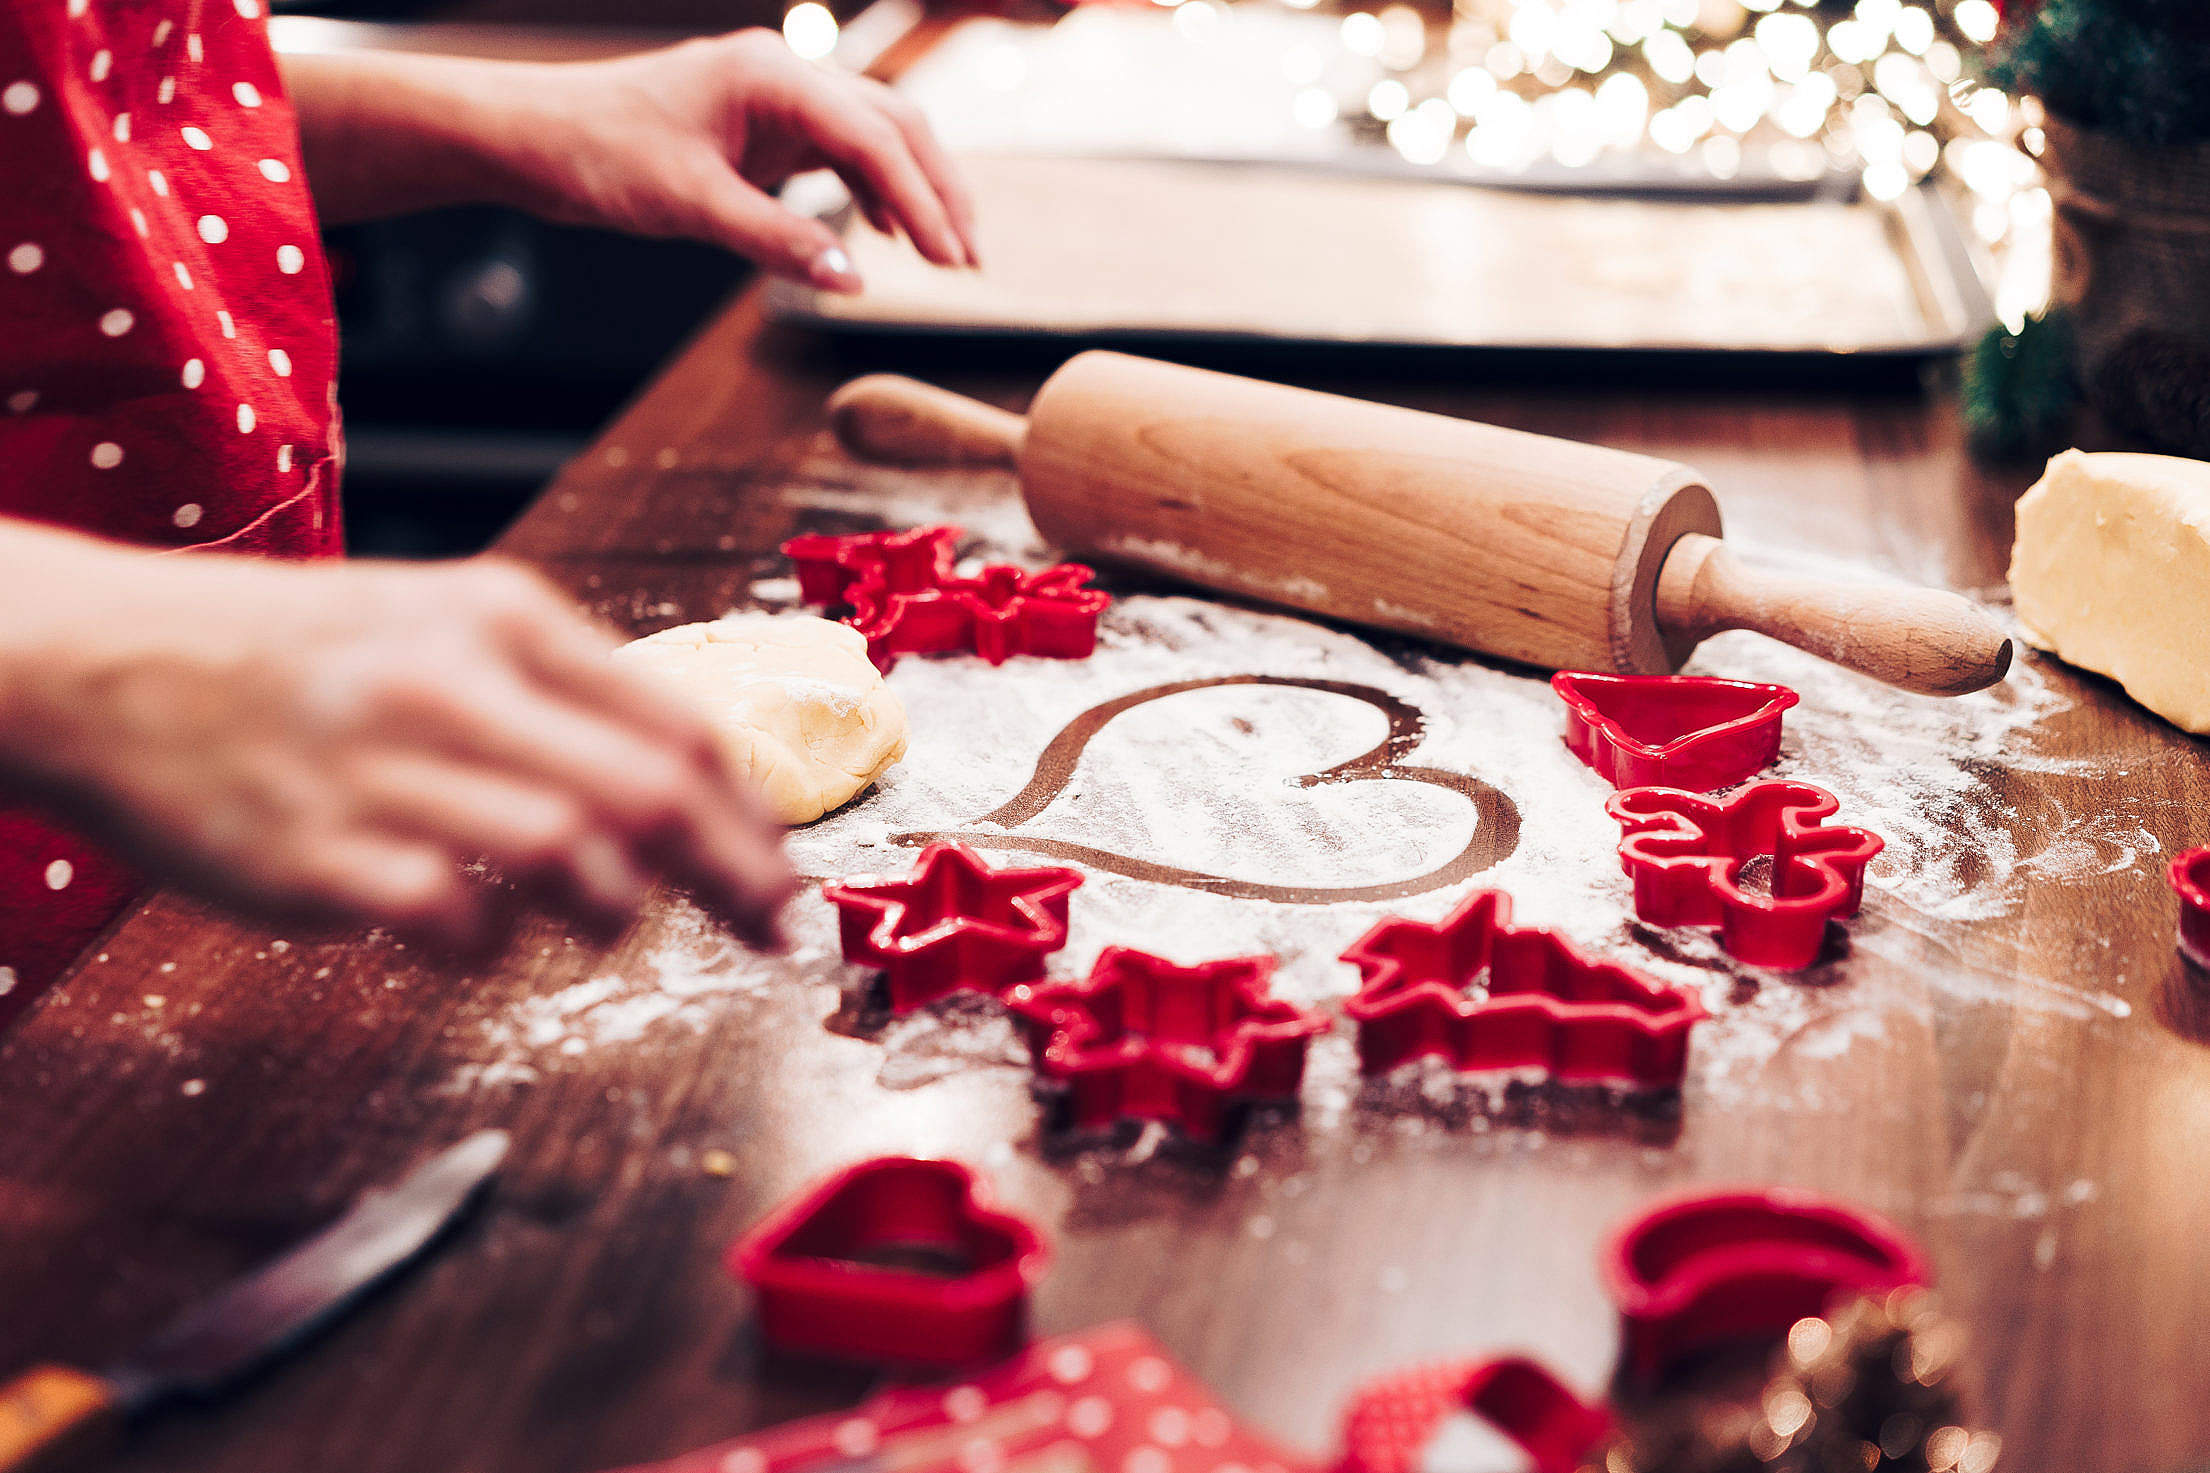 Christmas Cookies Baking with Love Free Stock Photo